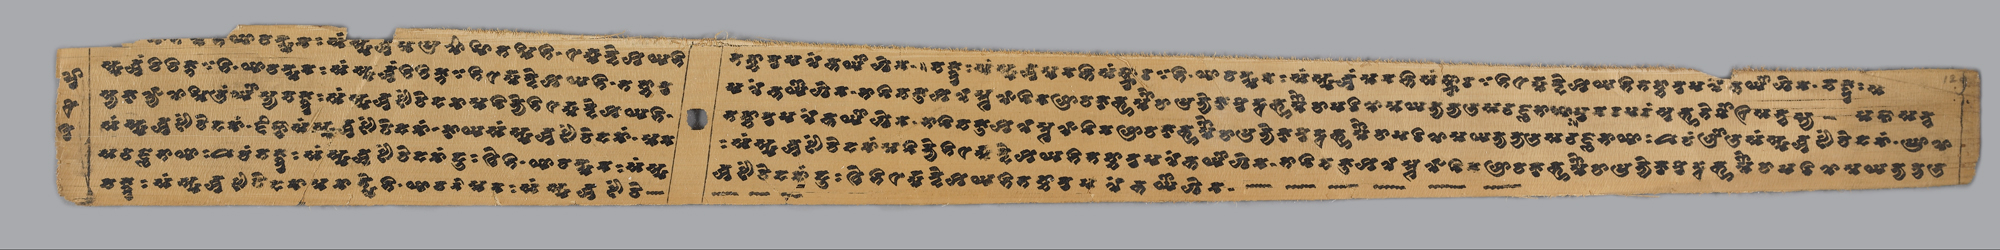 Sutra of the Perfection of Wisdom in 100,000 Lines, IOL San 1492/15–19, 15a